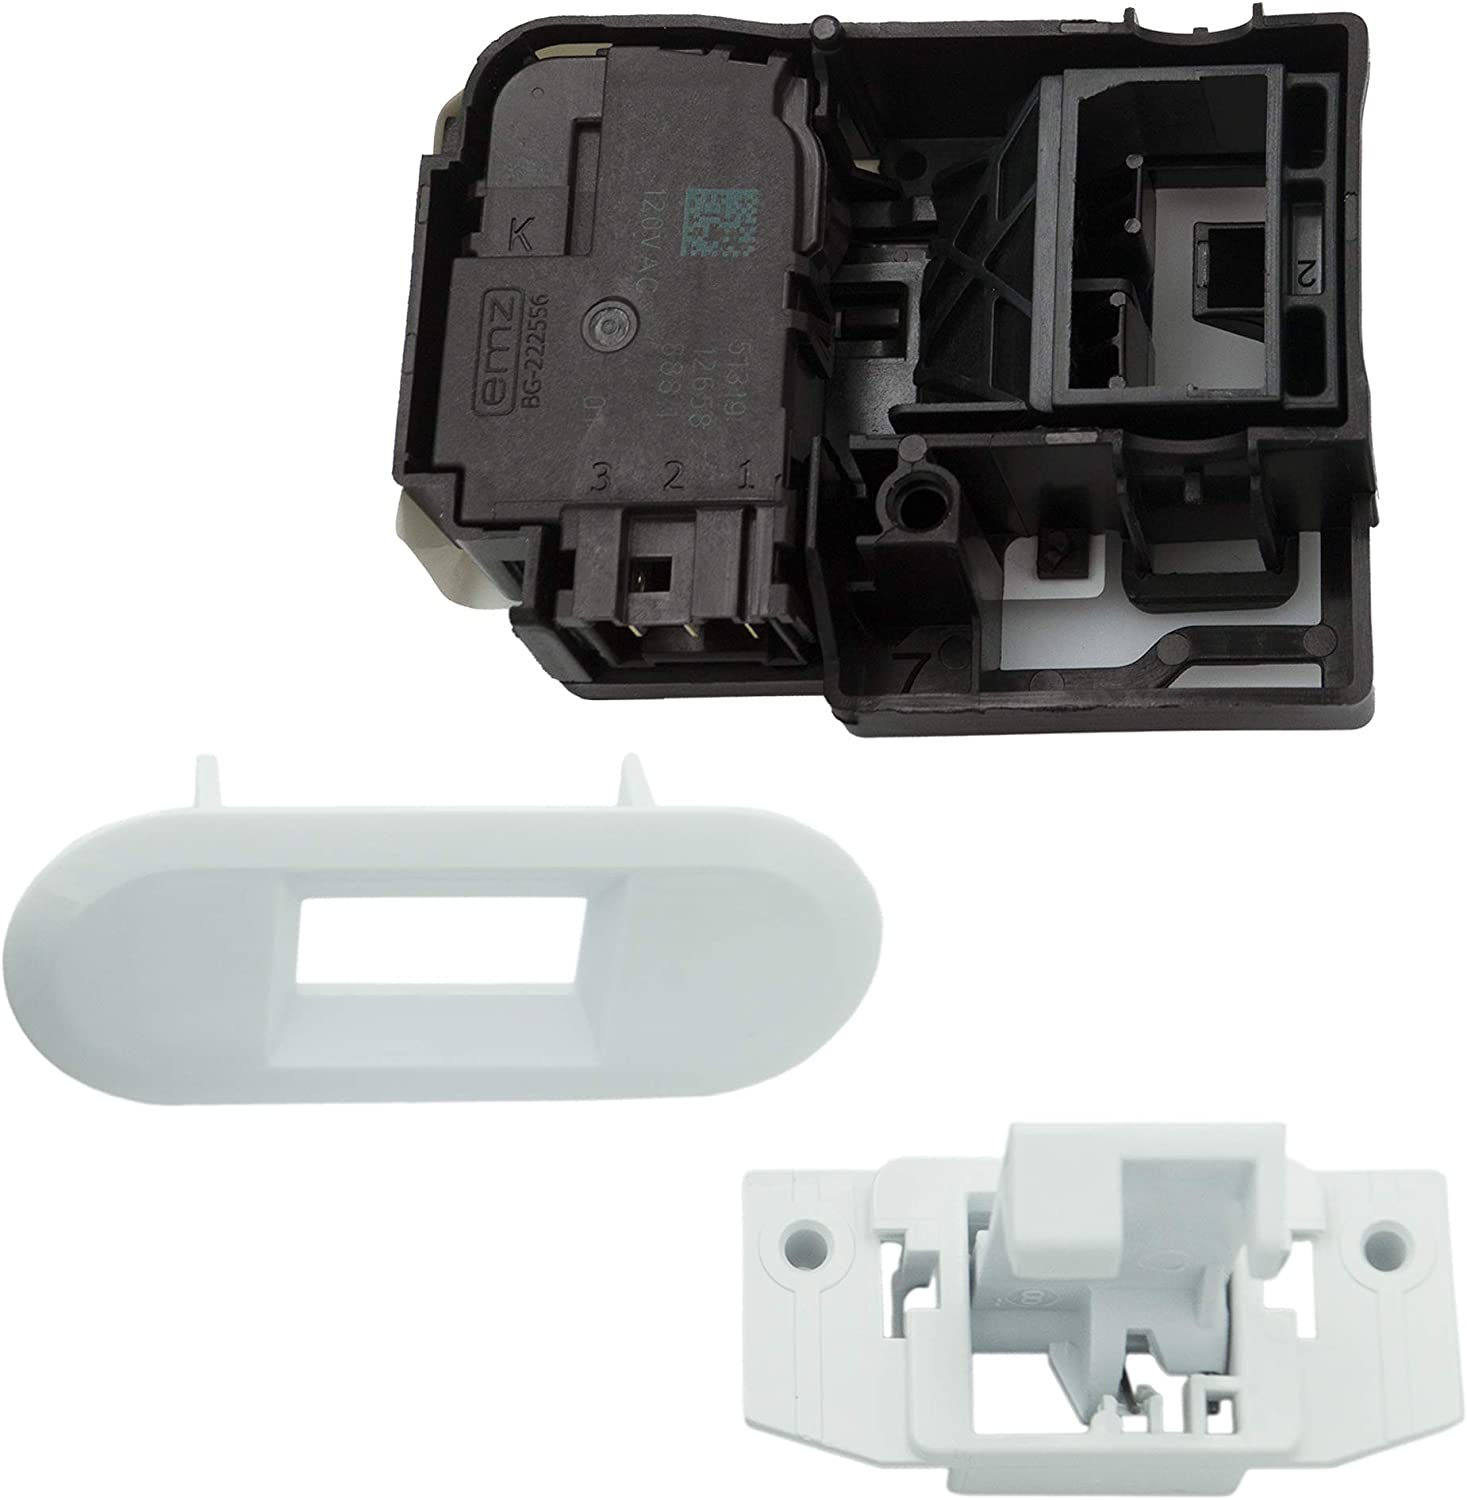 Supplying Demand WH01X27954 WH02X24399 WH01X24381 Washing Machine Lid Lock Repair Kit Compatible With GE